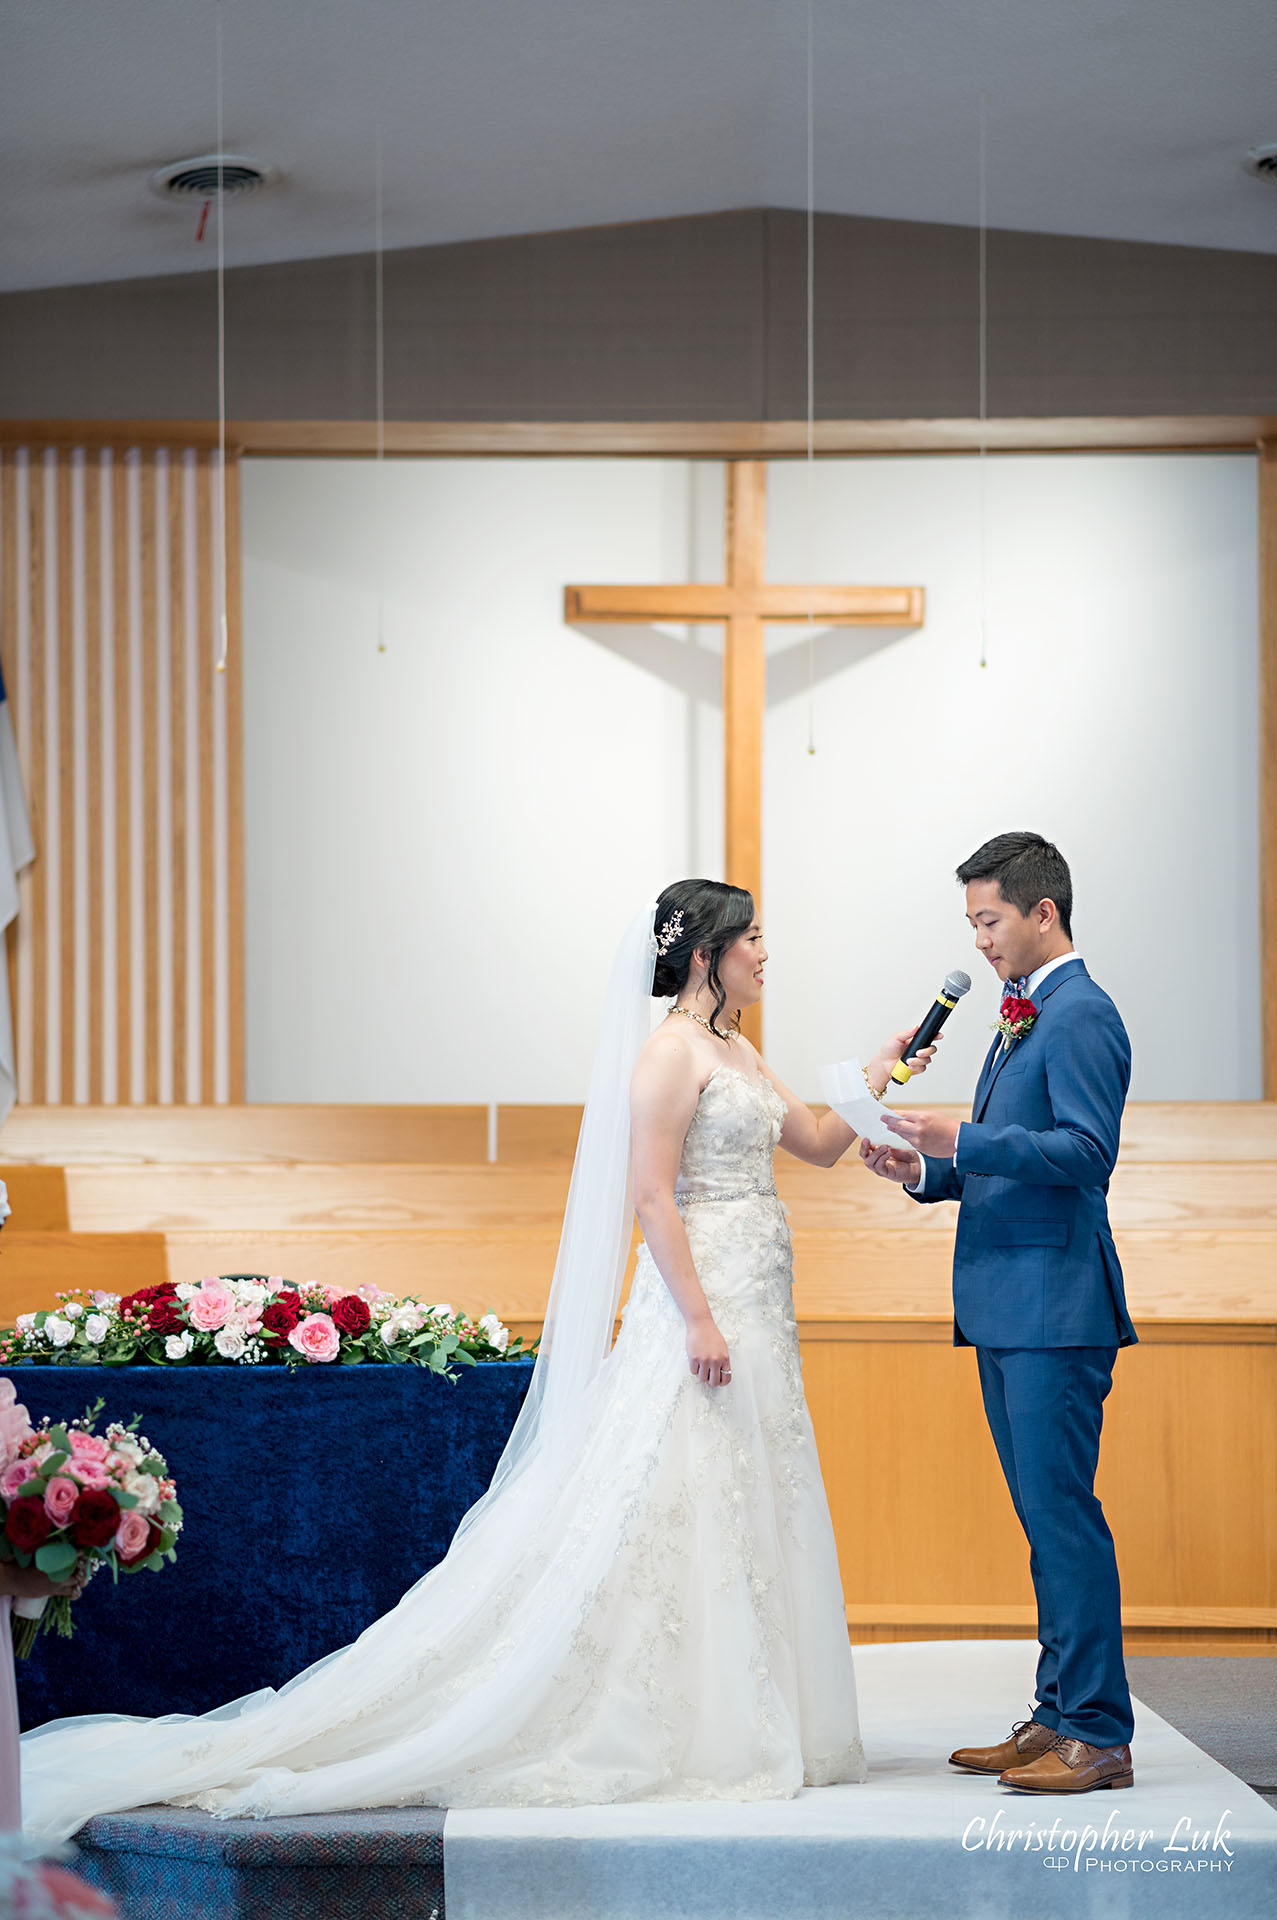 Christopher Luk Toronto Wedding Photographer Bridle Trail Baptist Church Unionville Main Street Crystal Fountain Event Venue Ceremony Location Interior Bride Groom Sanctuary Natural Photojournalistic Candid Vows Vertical Portrait Cross Altar Stage